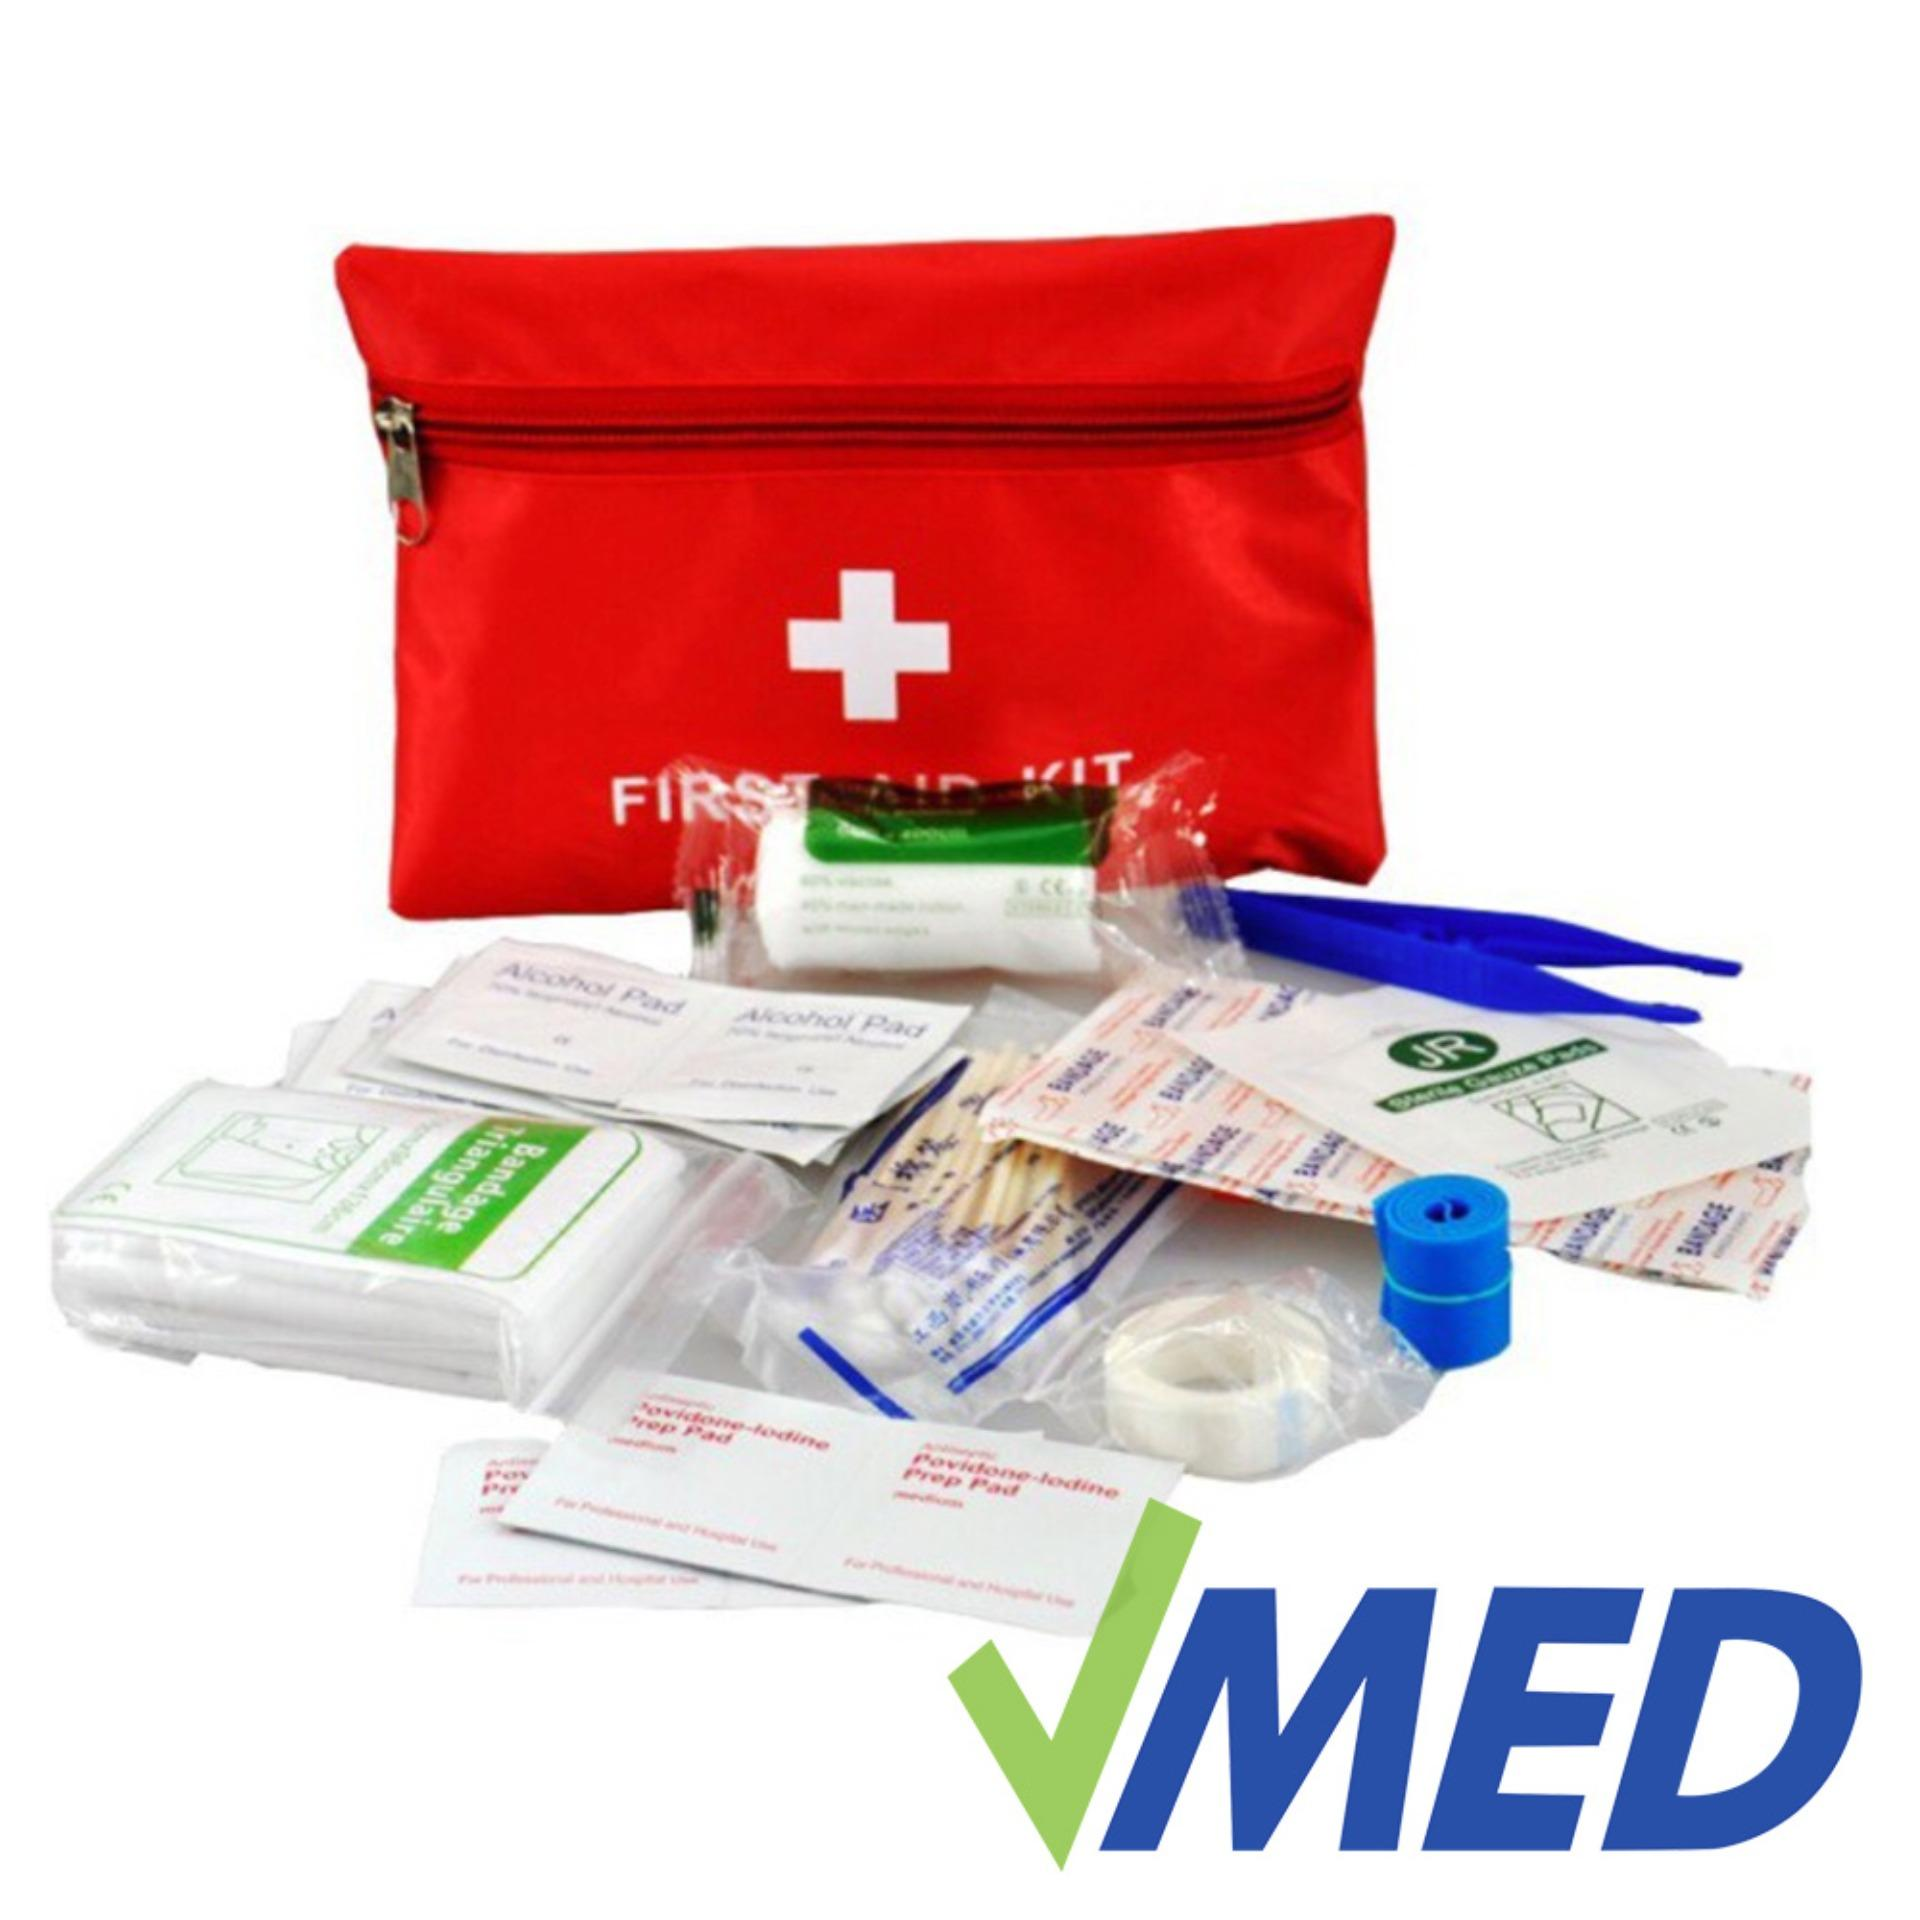 35pcs Complete First Aid Kit By Vmed.